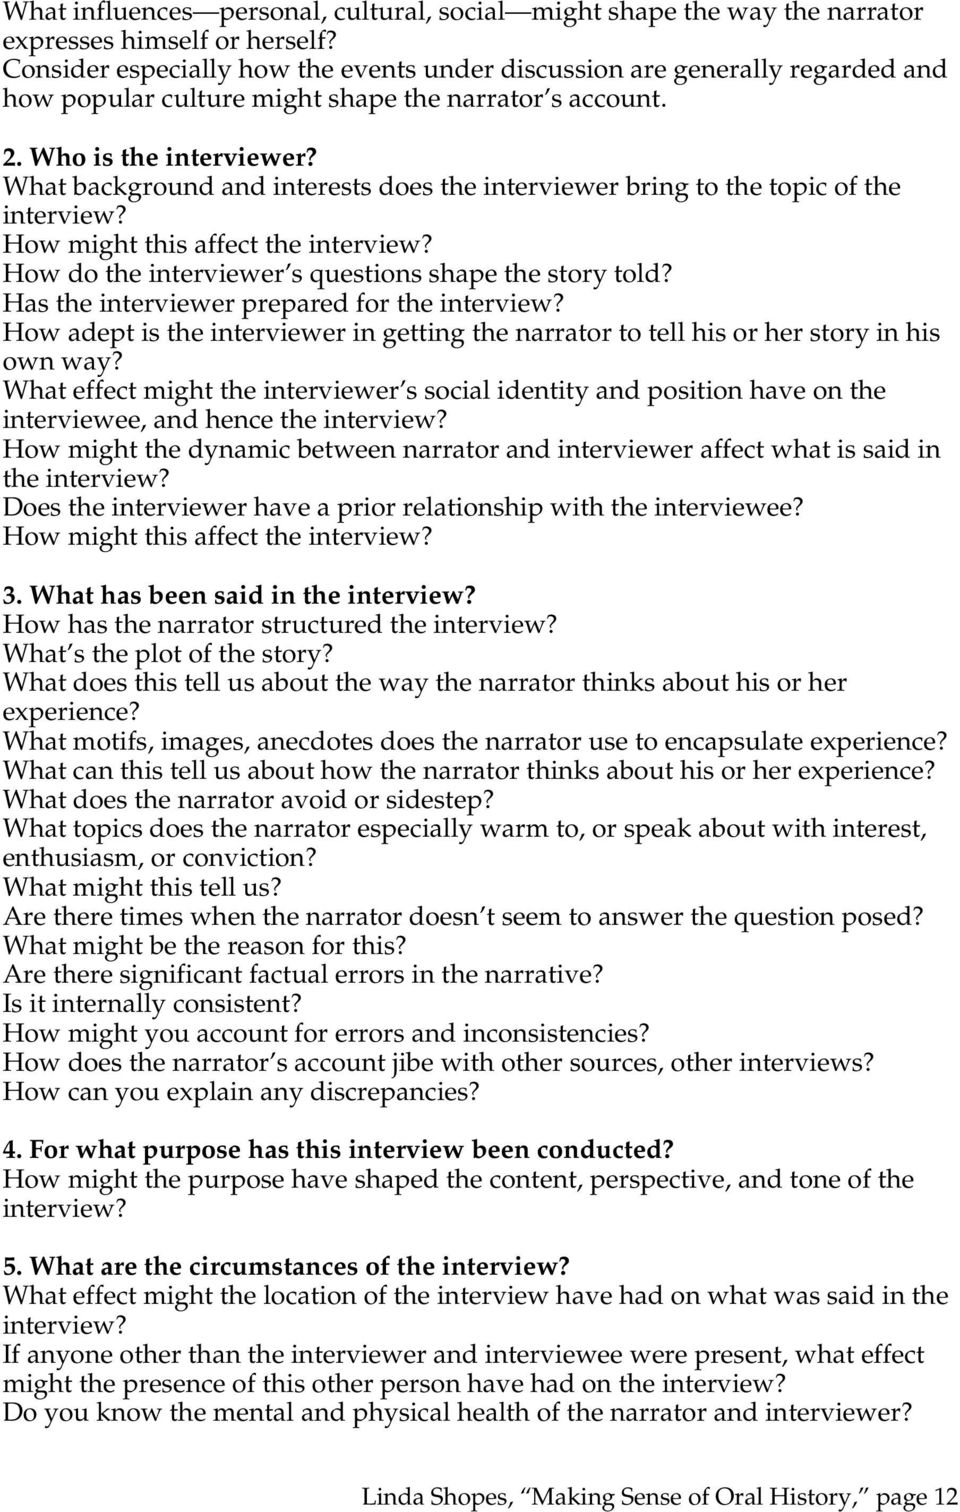 What background and interests does the interviewer bring to the topic of the interview? How might this affect the interview? How do the interviewer s questions shape the story told?